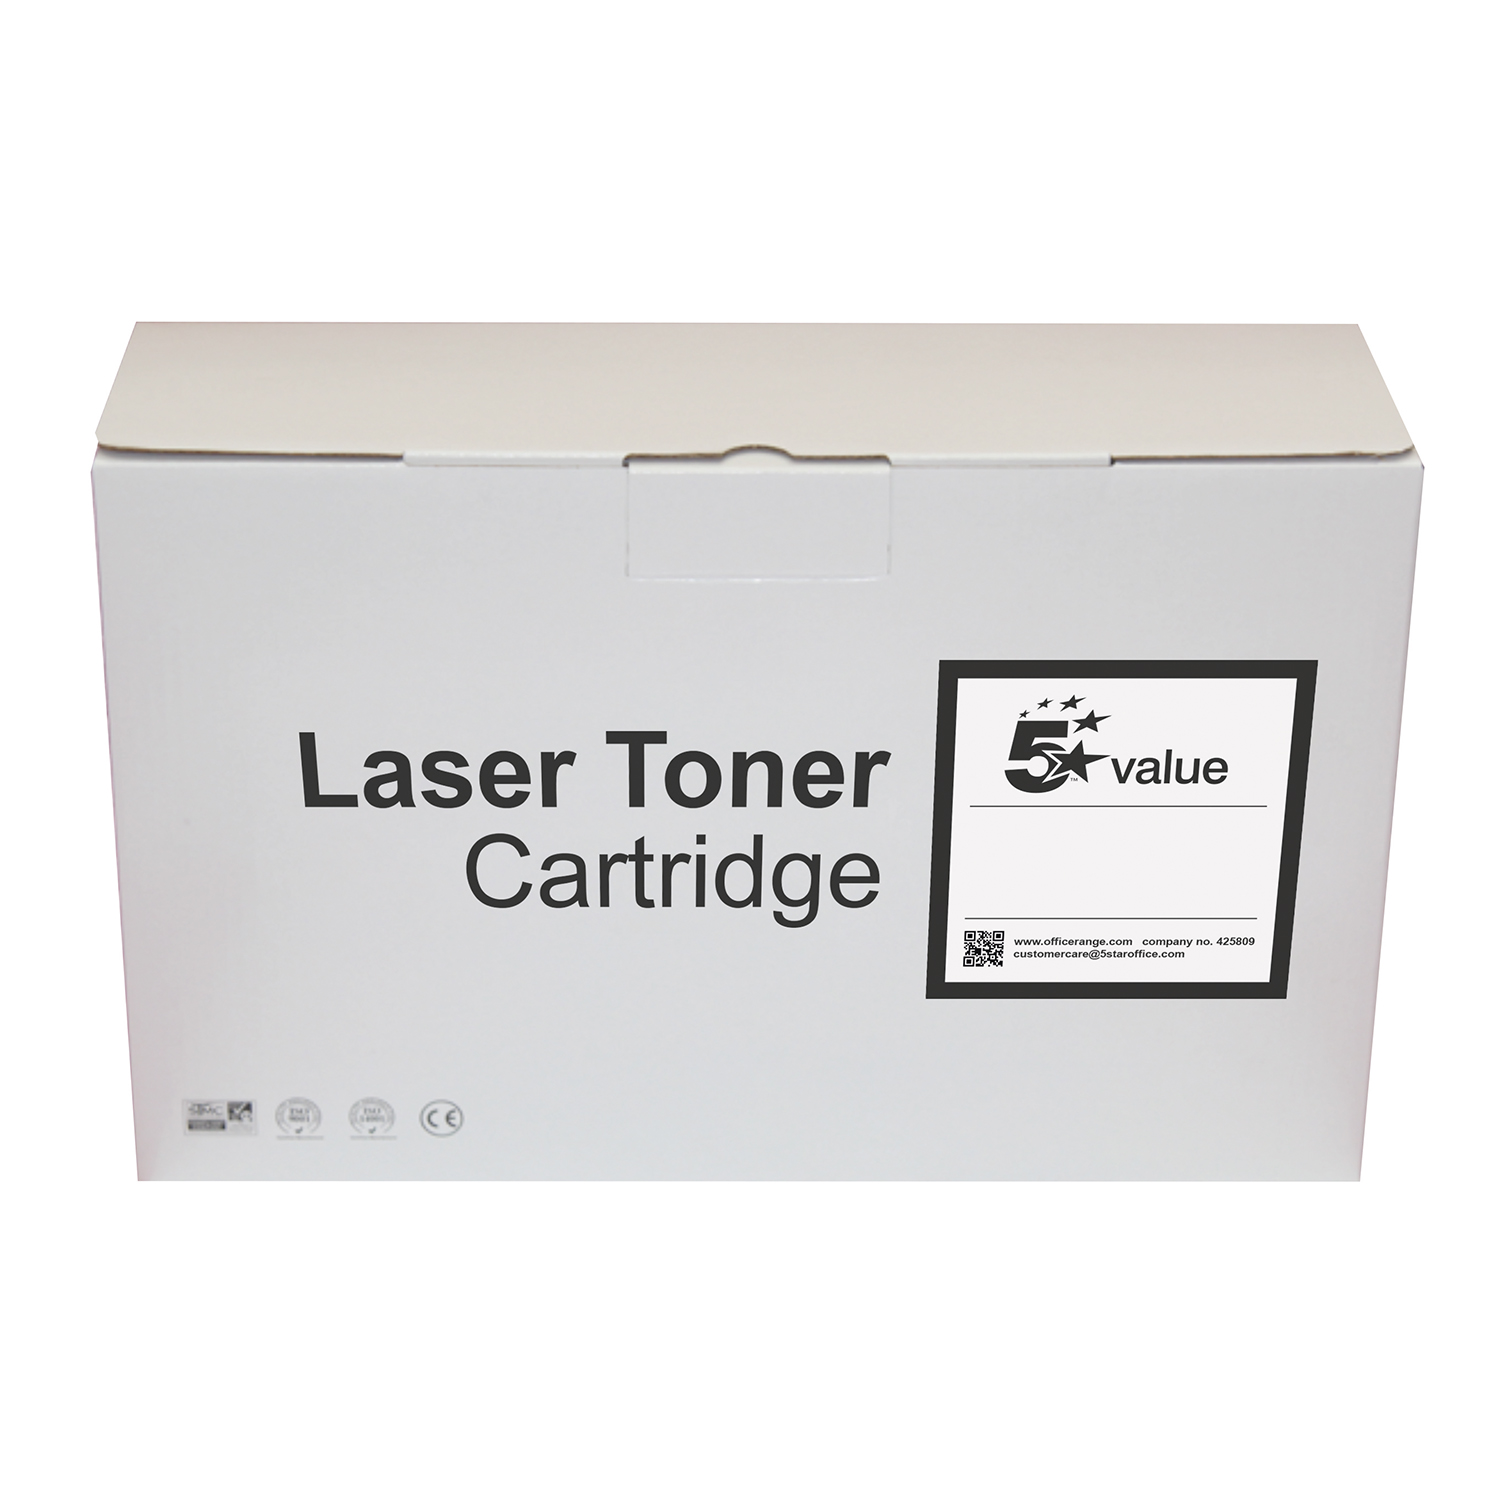 5 Star Value Remanufactured Laser Toner Cartridge 1800pp Yellow HP No. 131A CF212A Alternative